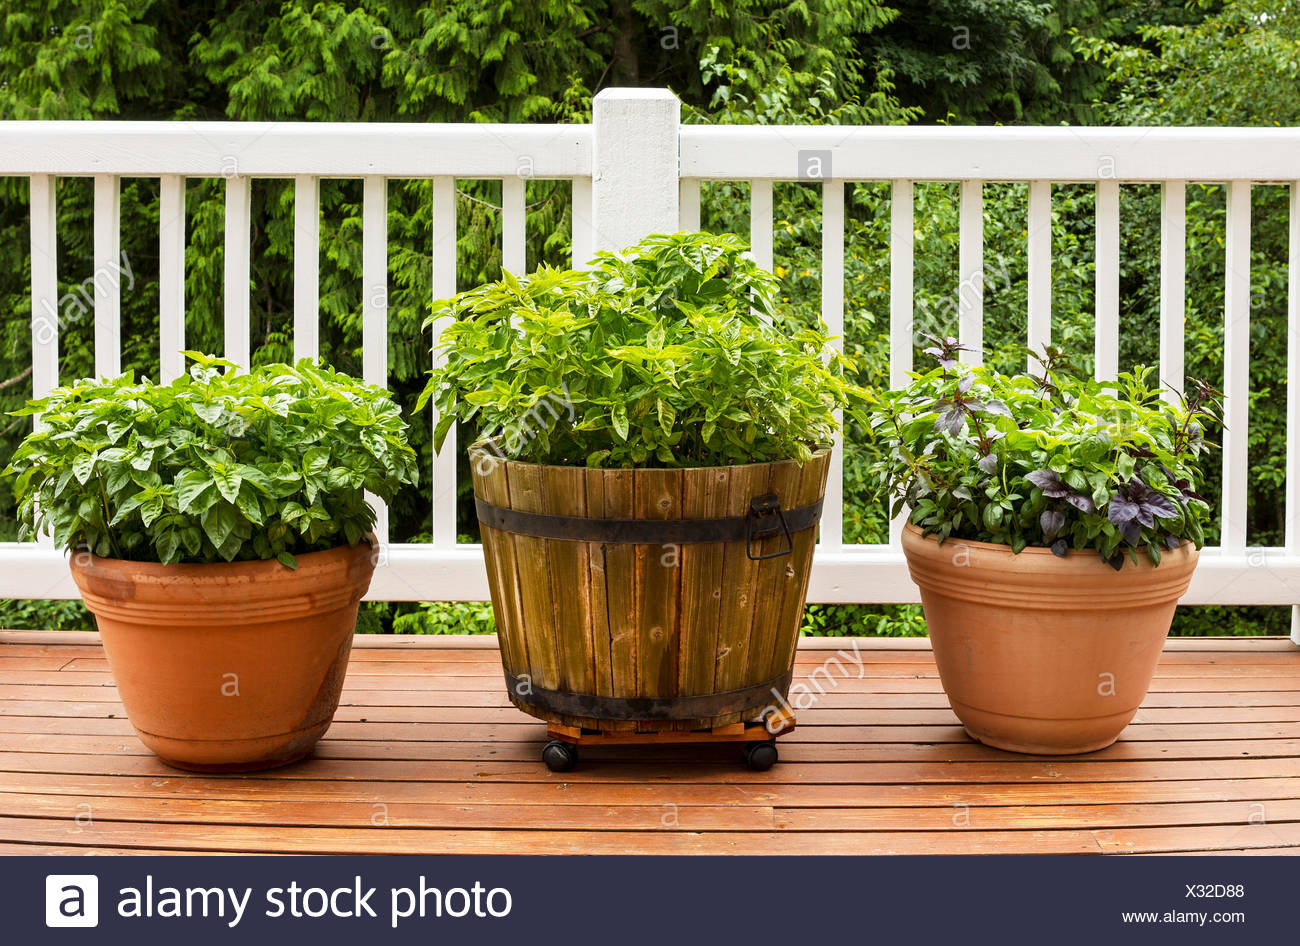 Horizontal Photo Of A Home Herb Garden Consisting Of Large Flat Leaf  Italian Basil Plants Growing In Pots On Cedar Deck With White Railings And  Trees In ...